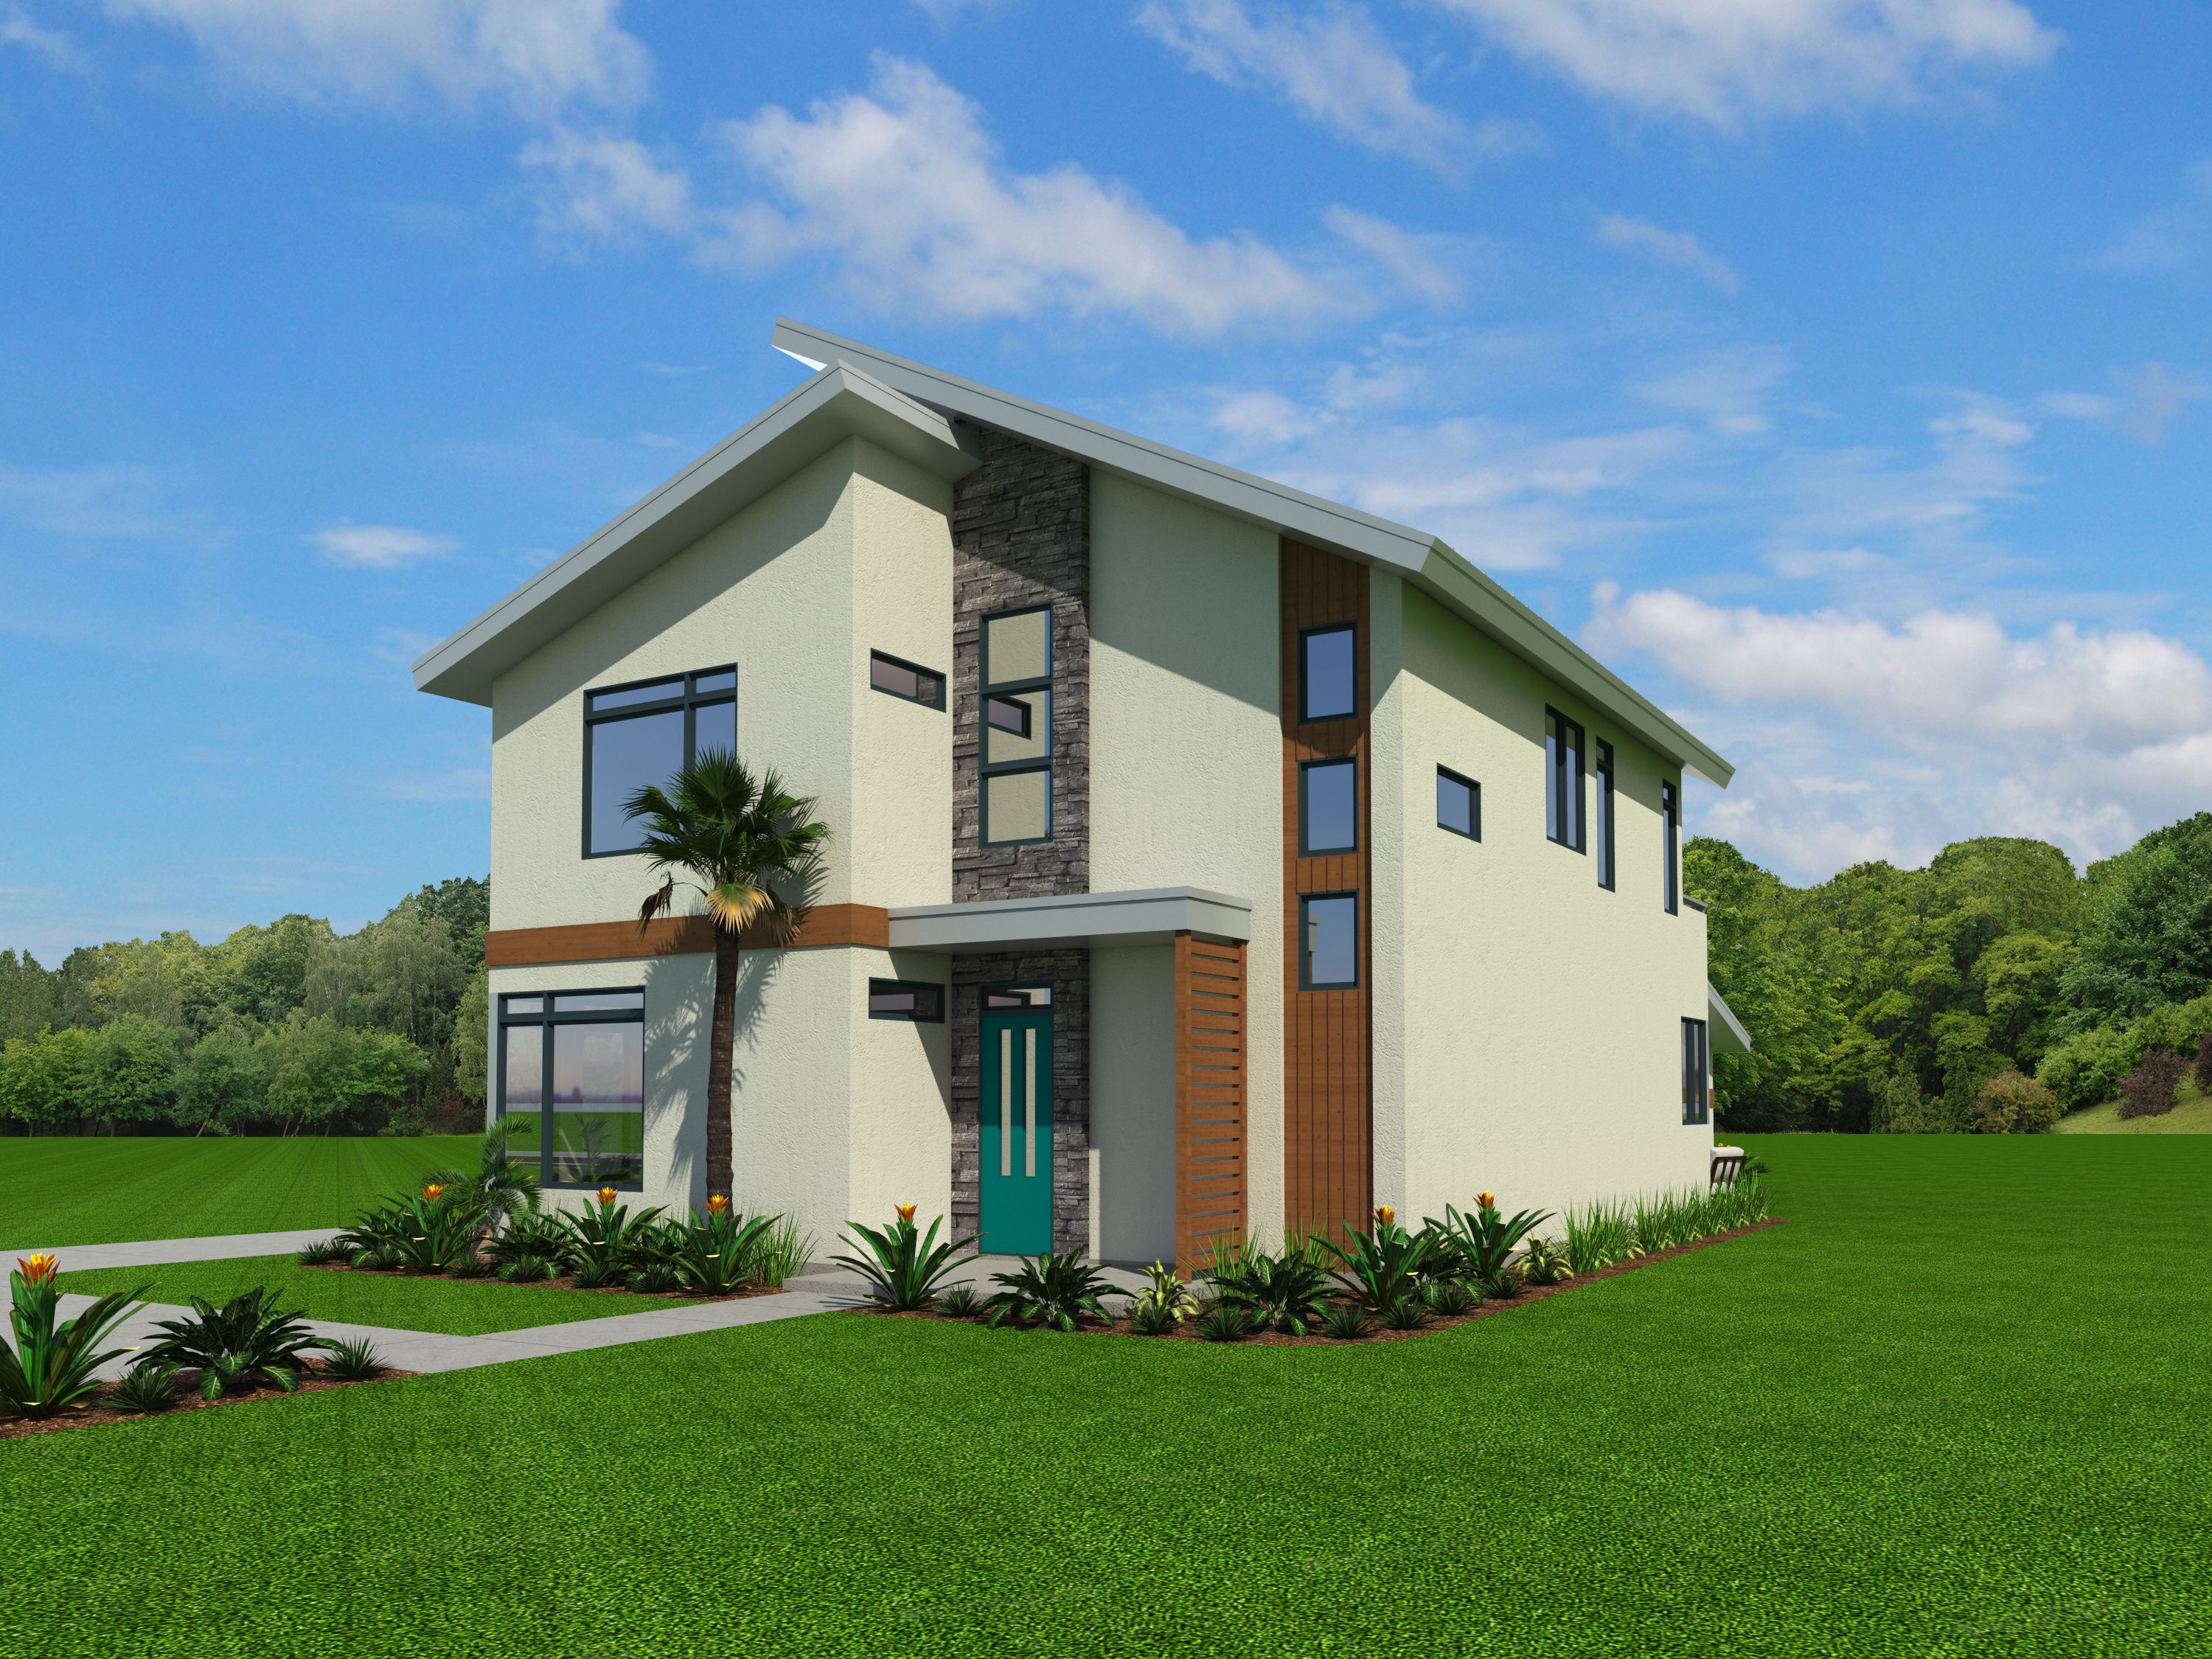 live final community cottage for gigabit cottages sale beach updated local homes rendering myrtle sc coupled